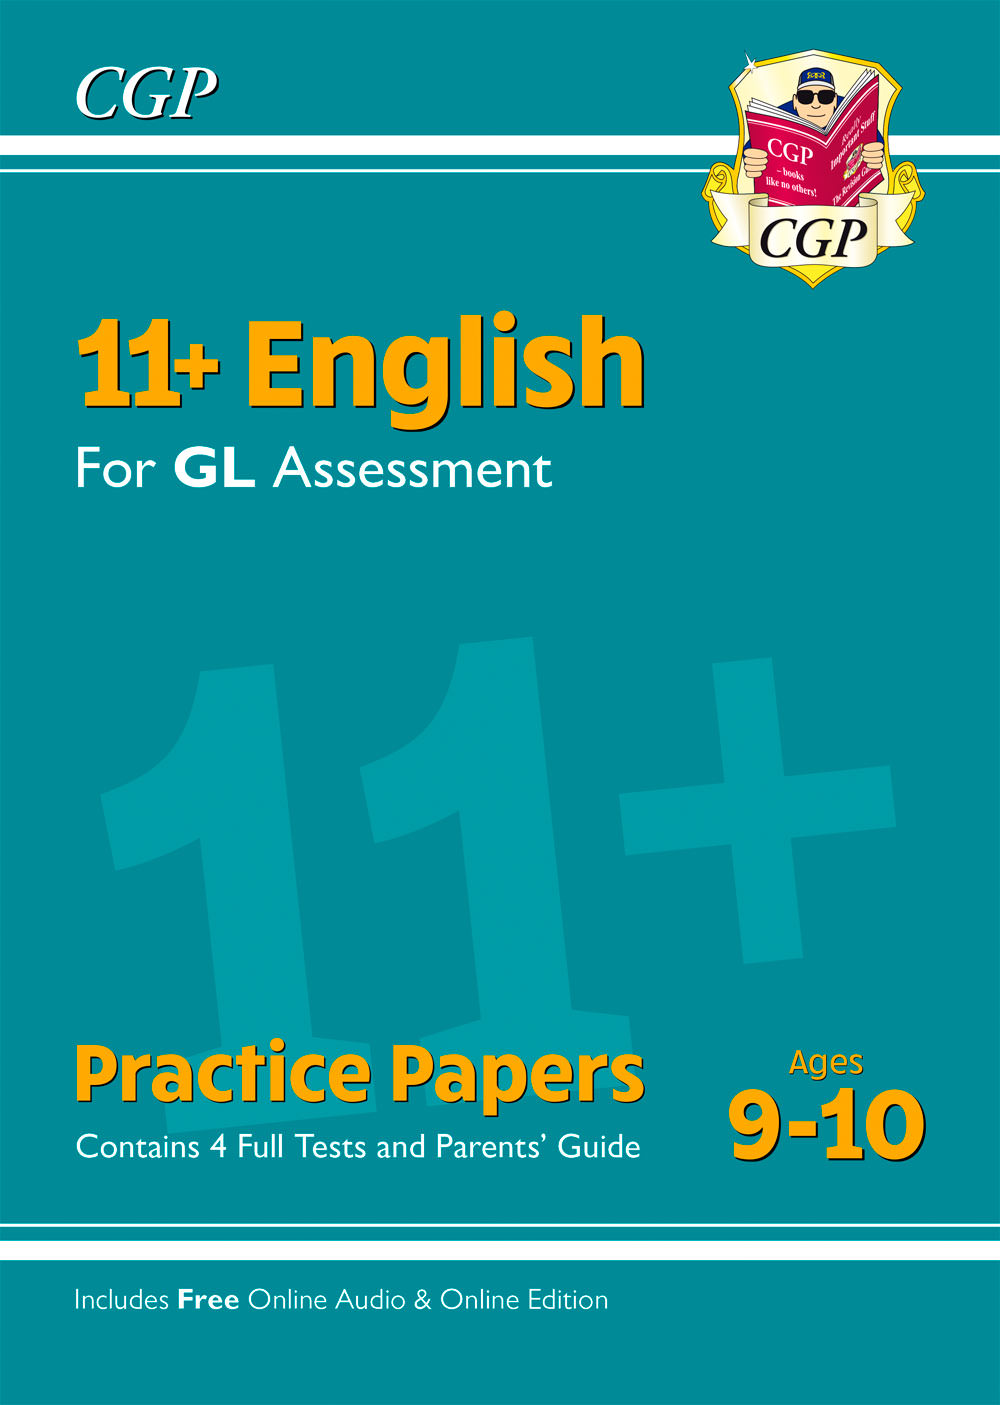 EH5PE1 - 11+ GL English Practice Papers - Ages 9-10 (with Parents' Guide & Online Edition)